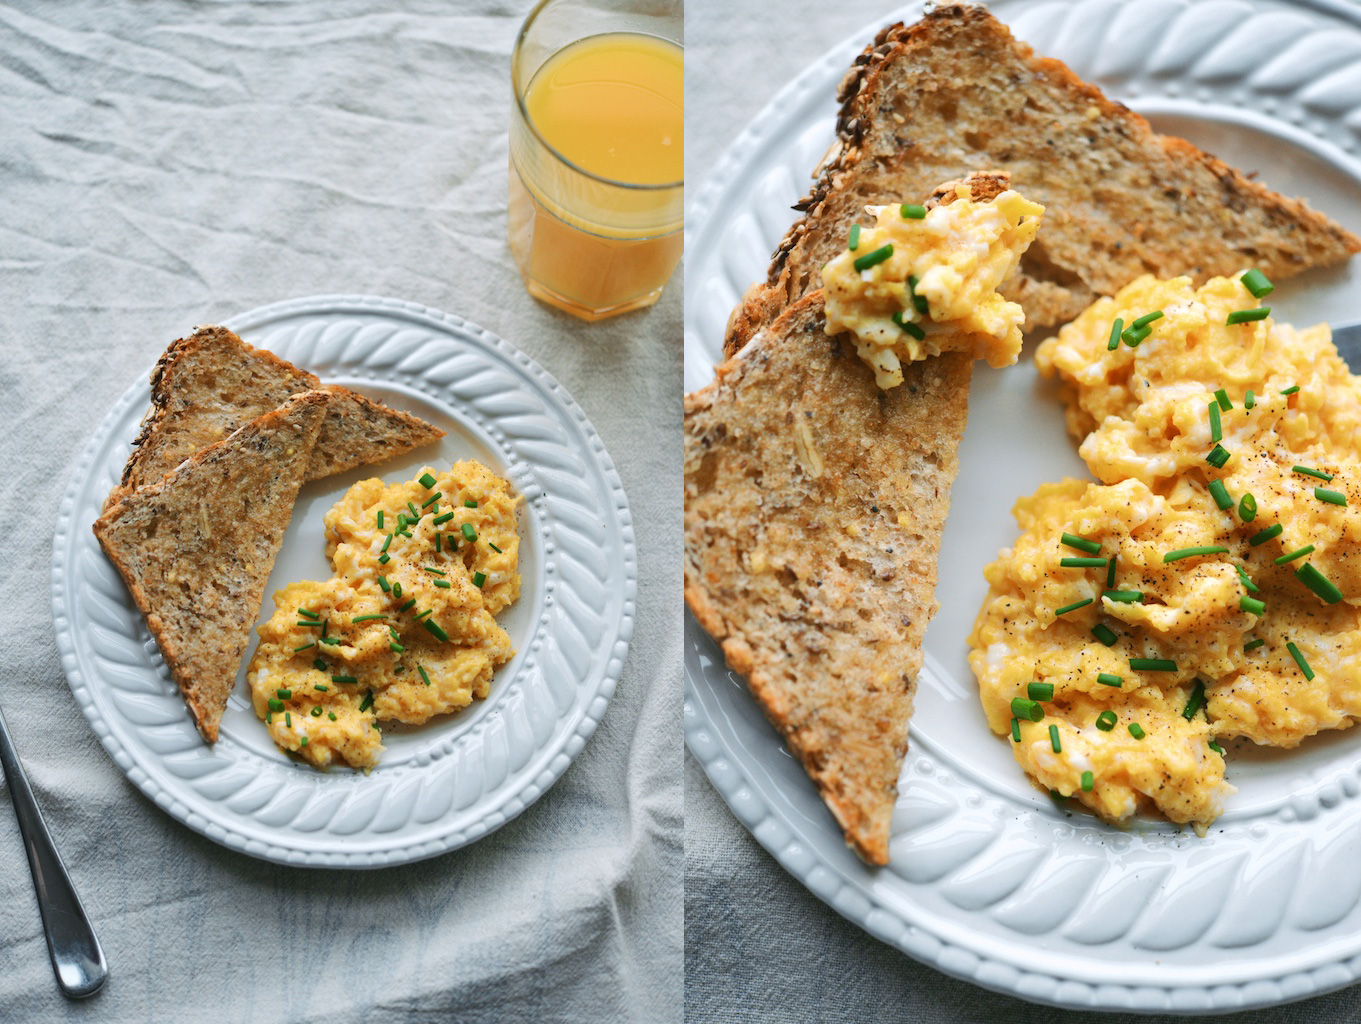 Softest, Slow-Cooked Scrambled Eggs with Toast